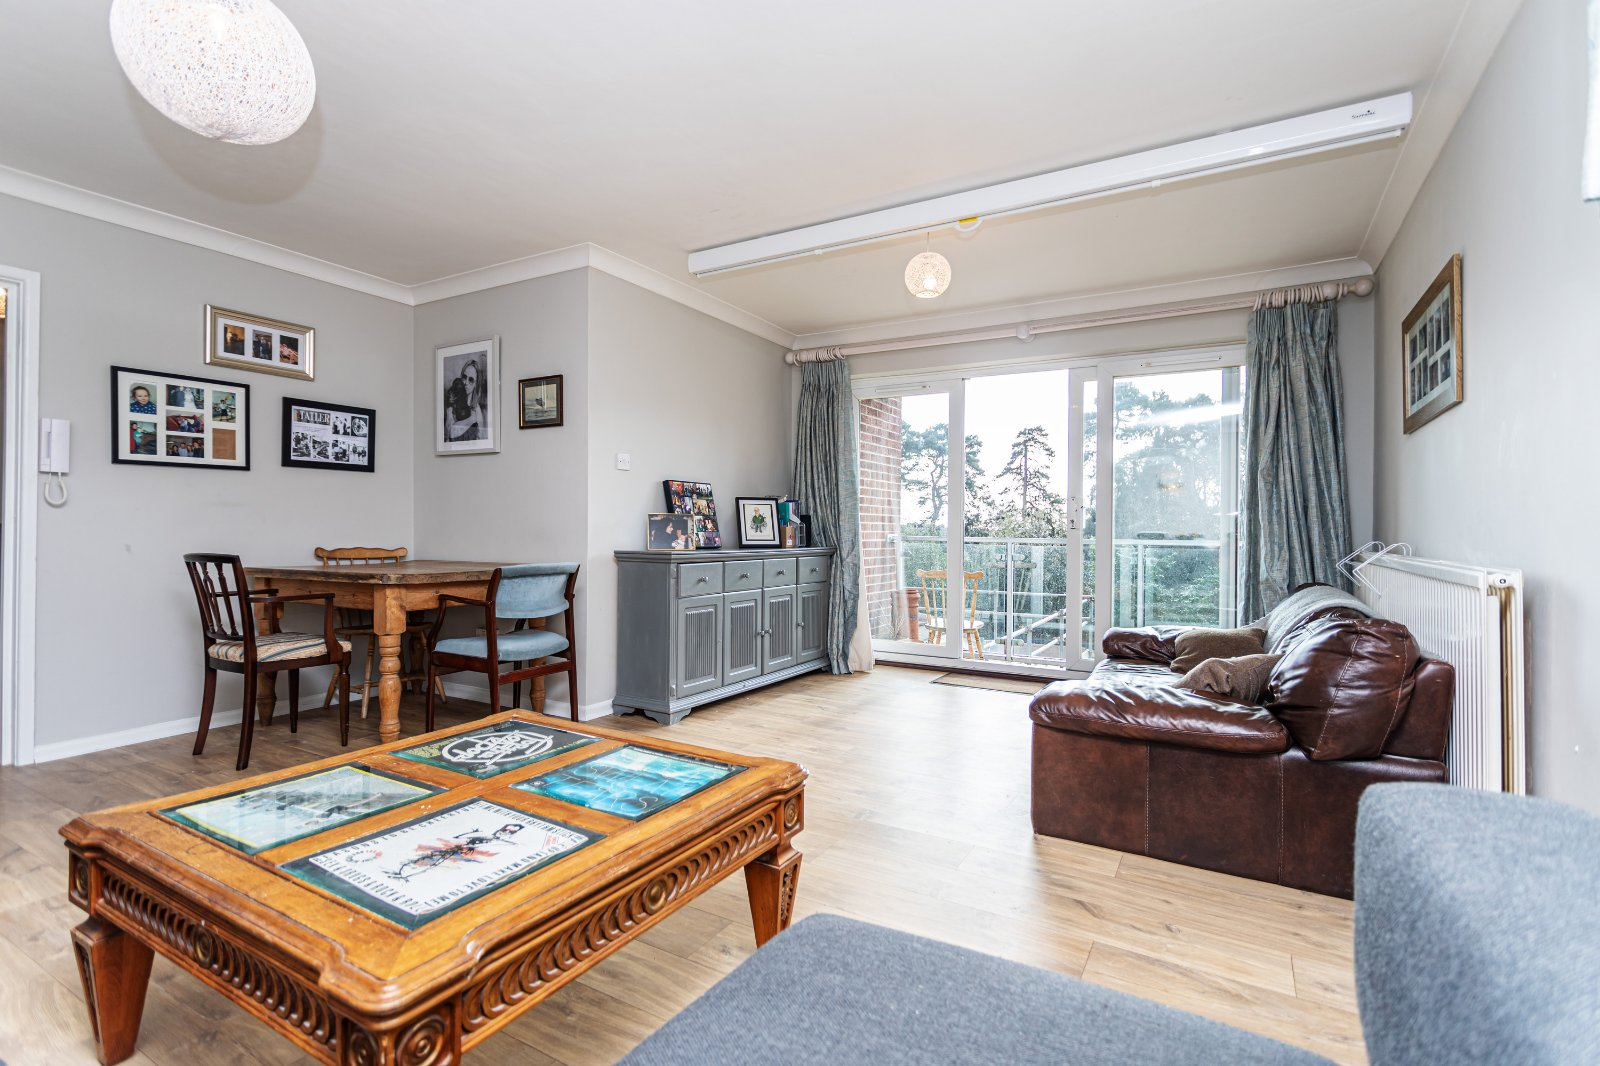 2 bed apartment for sale in Lower Parkstone, BH14